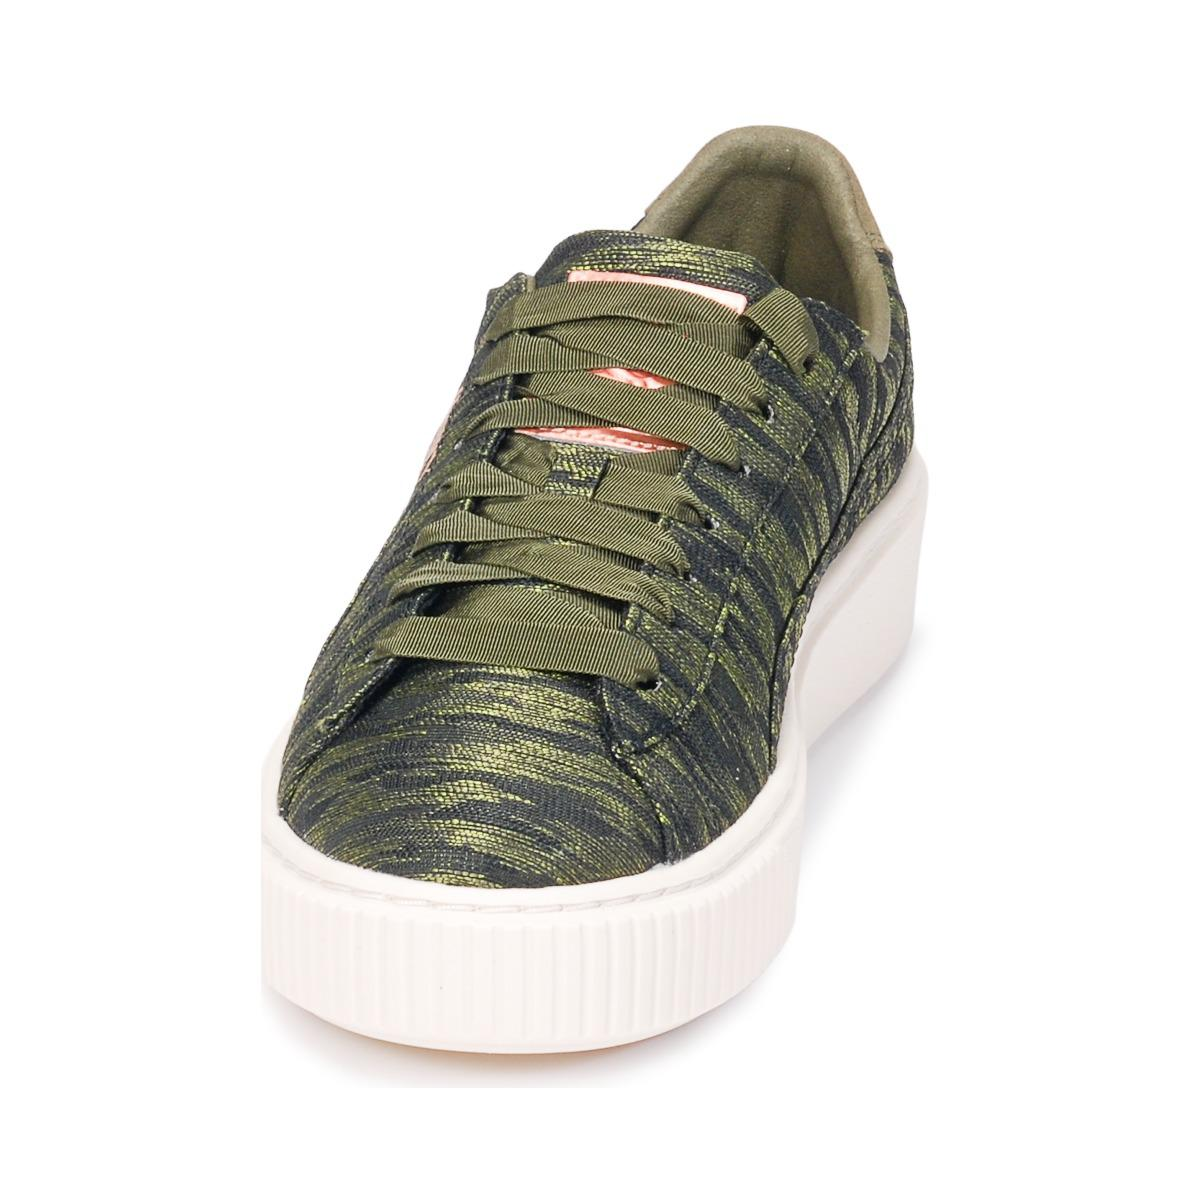 new style c4118 03c91 PUMA Basket Platform Sneakers in Green - Save 27% - Lyst